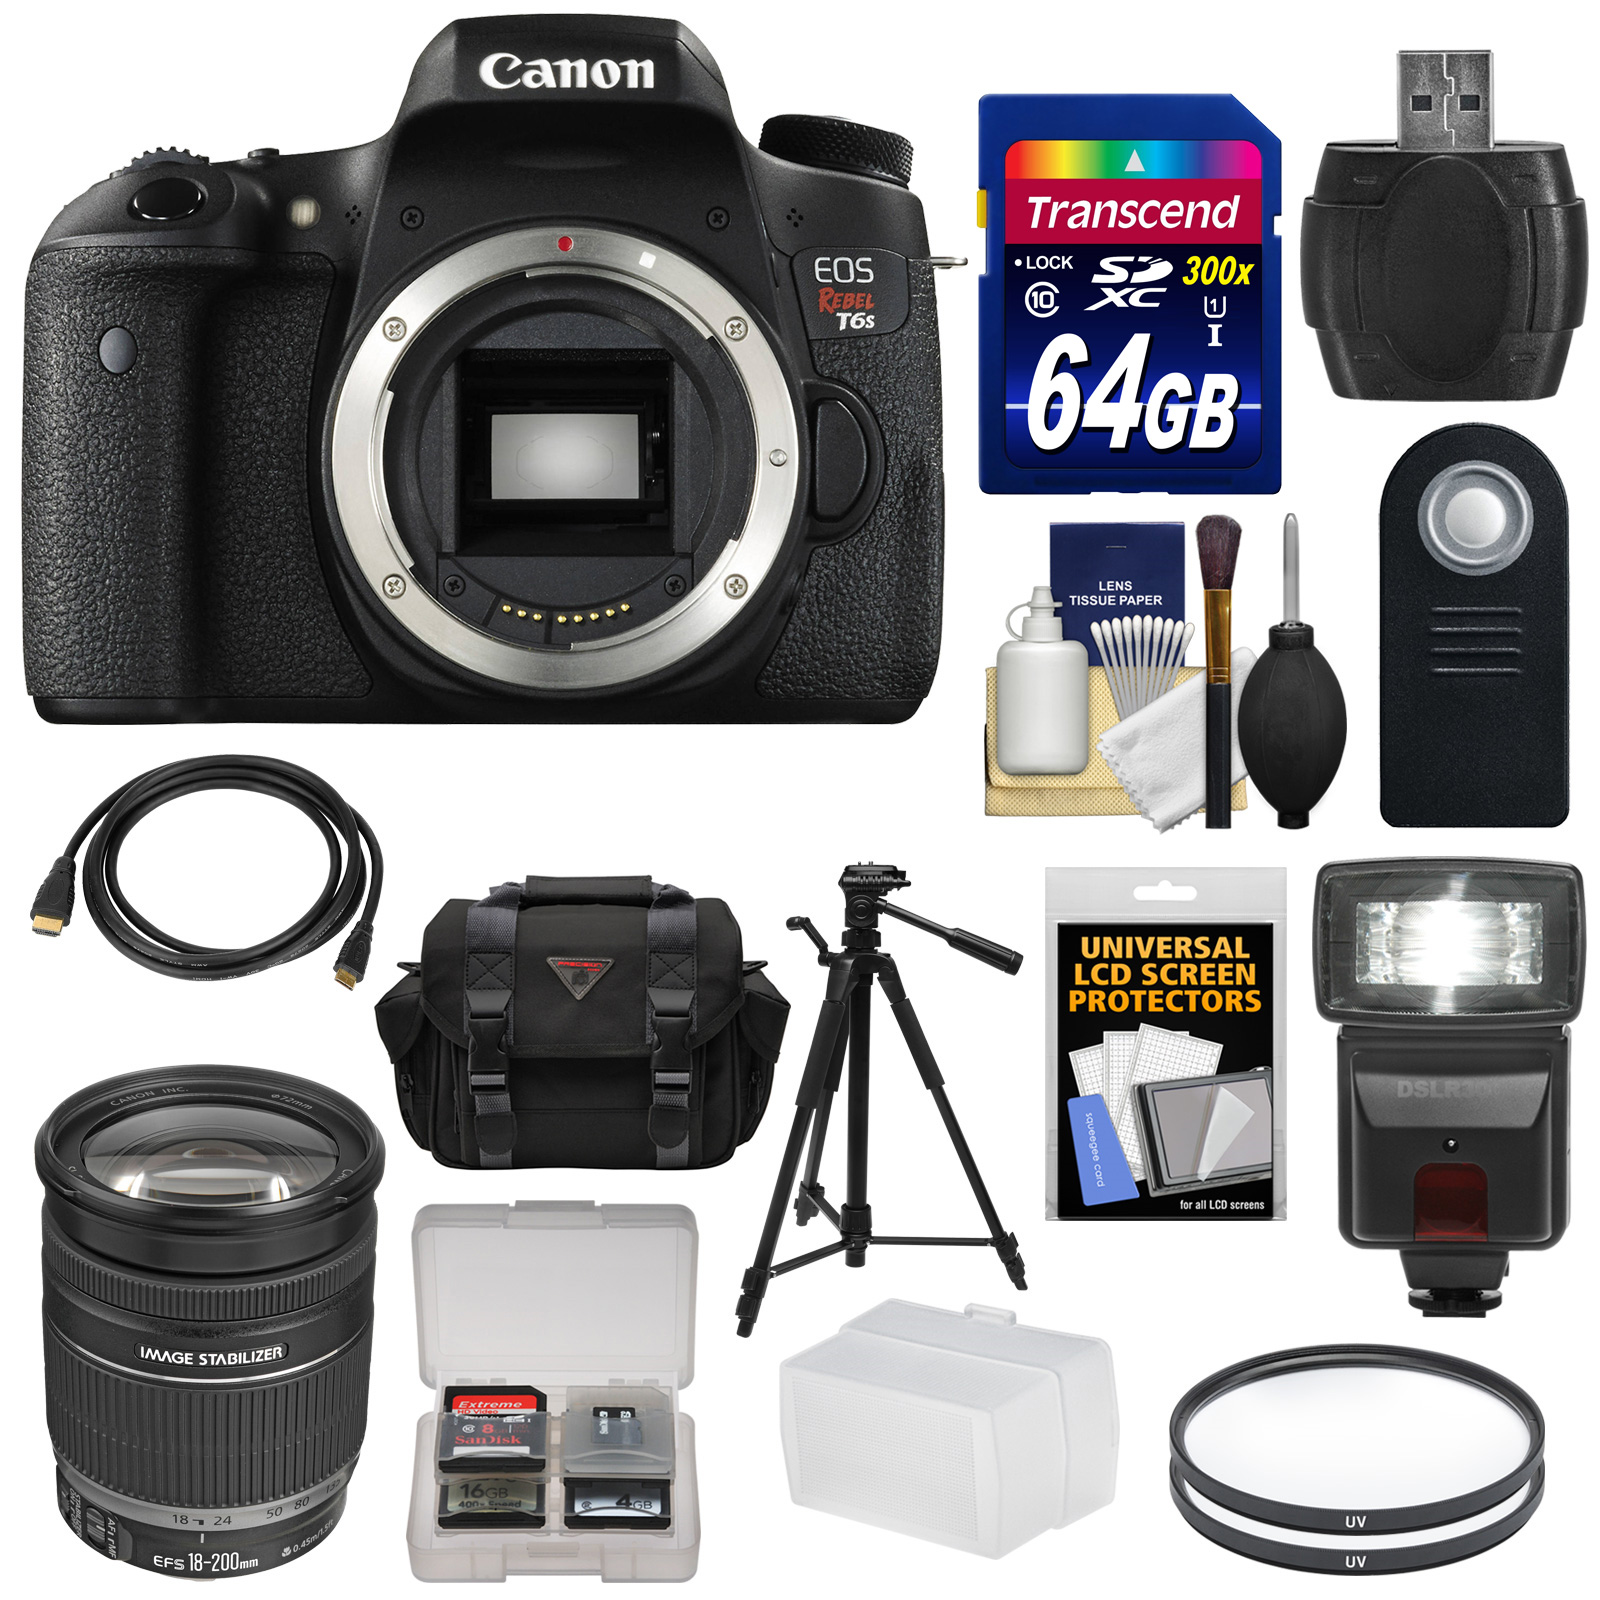 Canon EOS Rebel T6s Wi-Fi Digital SLR Camera Body with EF...